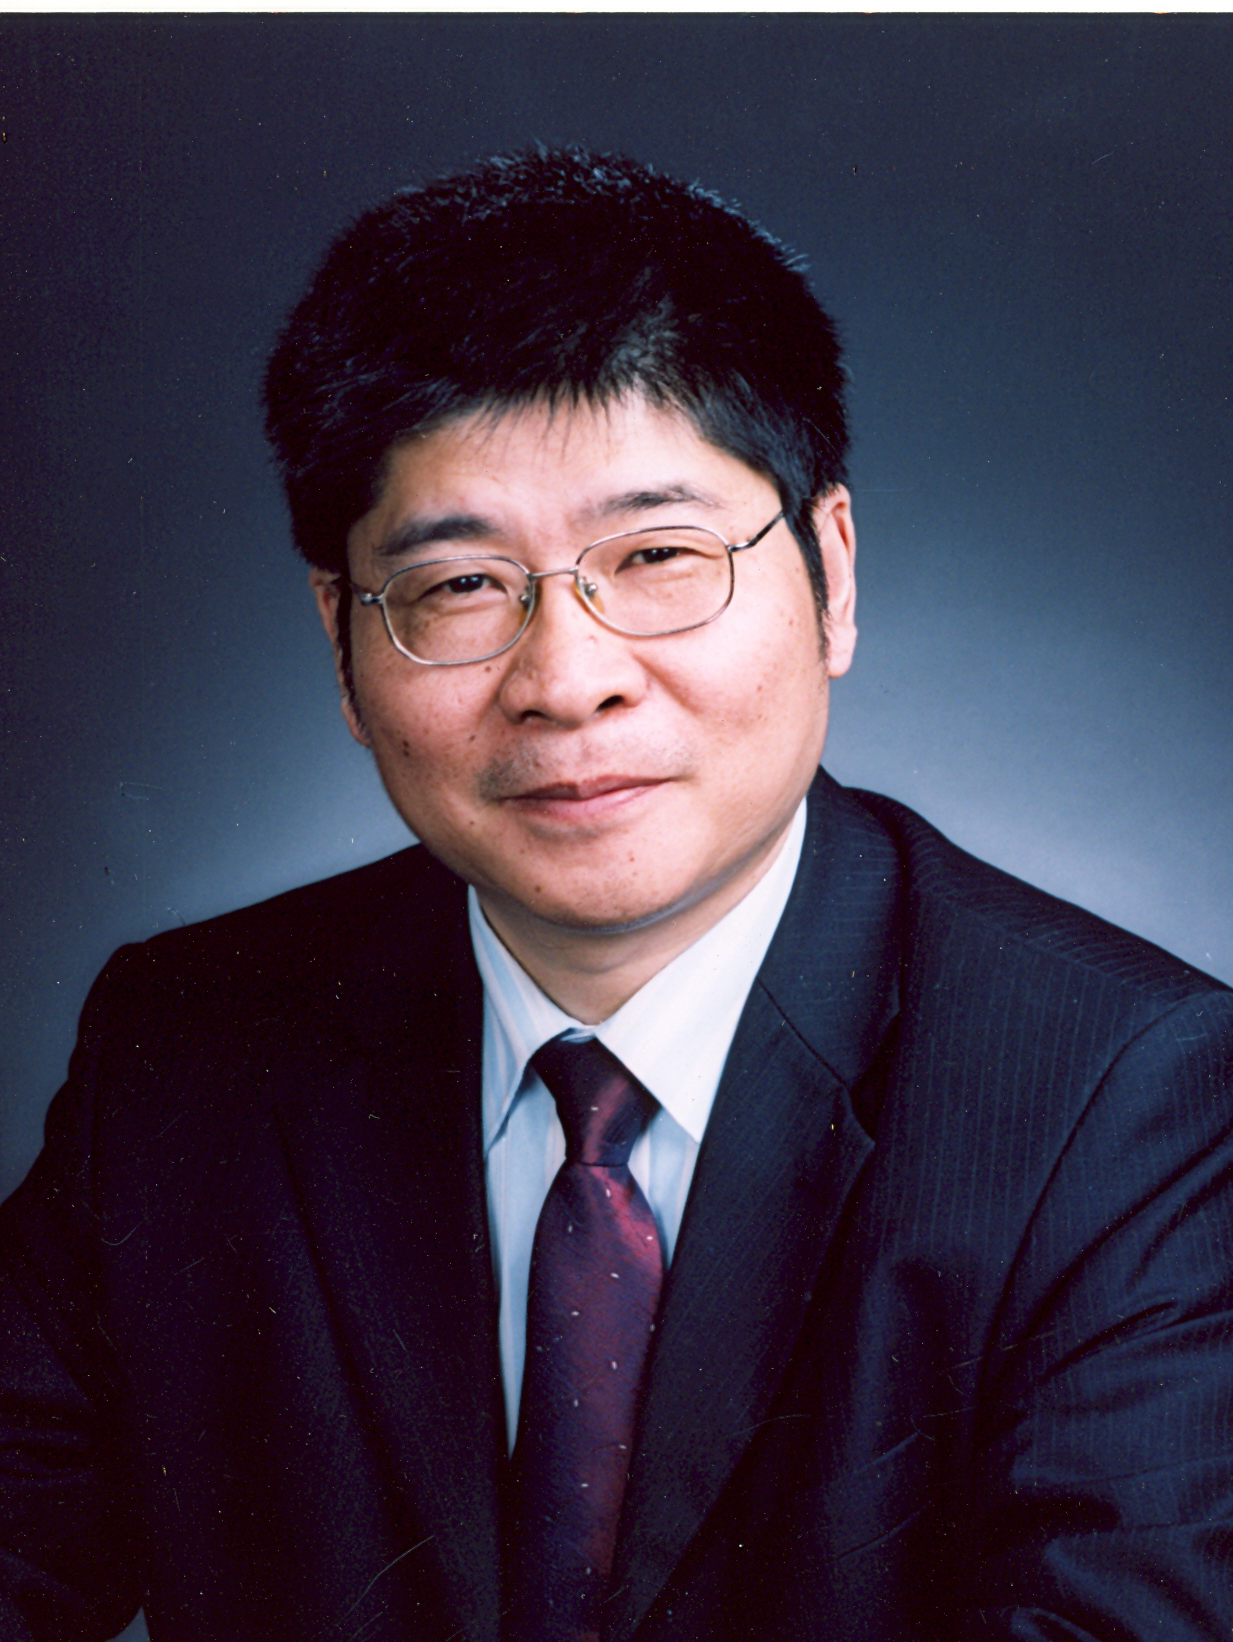 Allied Academies Chemistry 2020 Keynote Speaker Huangxian Ju photo